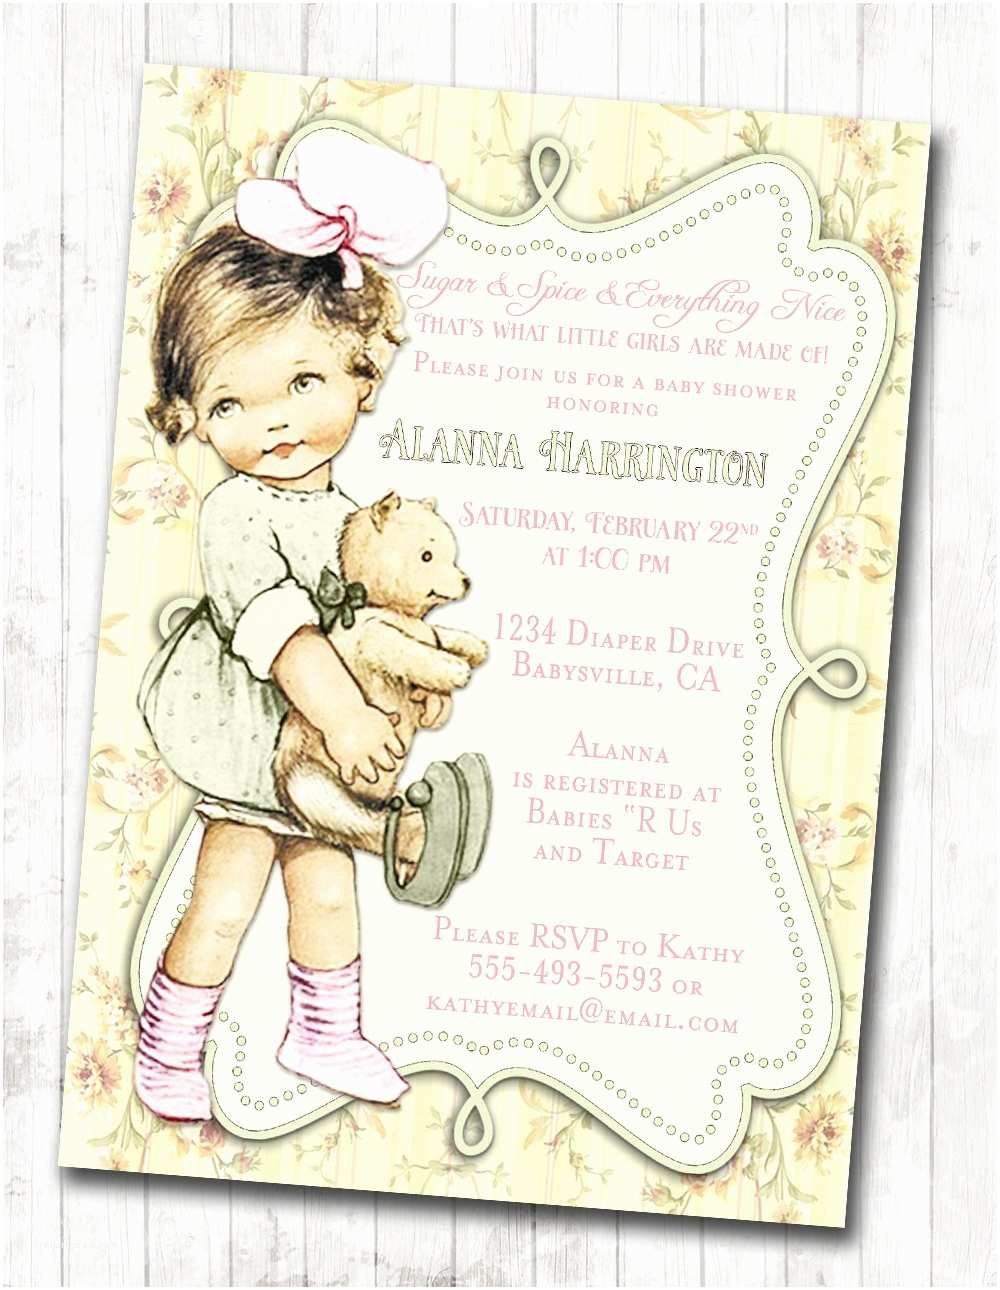 Vintage Baby Shower Invitations Shabby Chic Floral Vintage Baby Shower Invitation for Girl